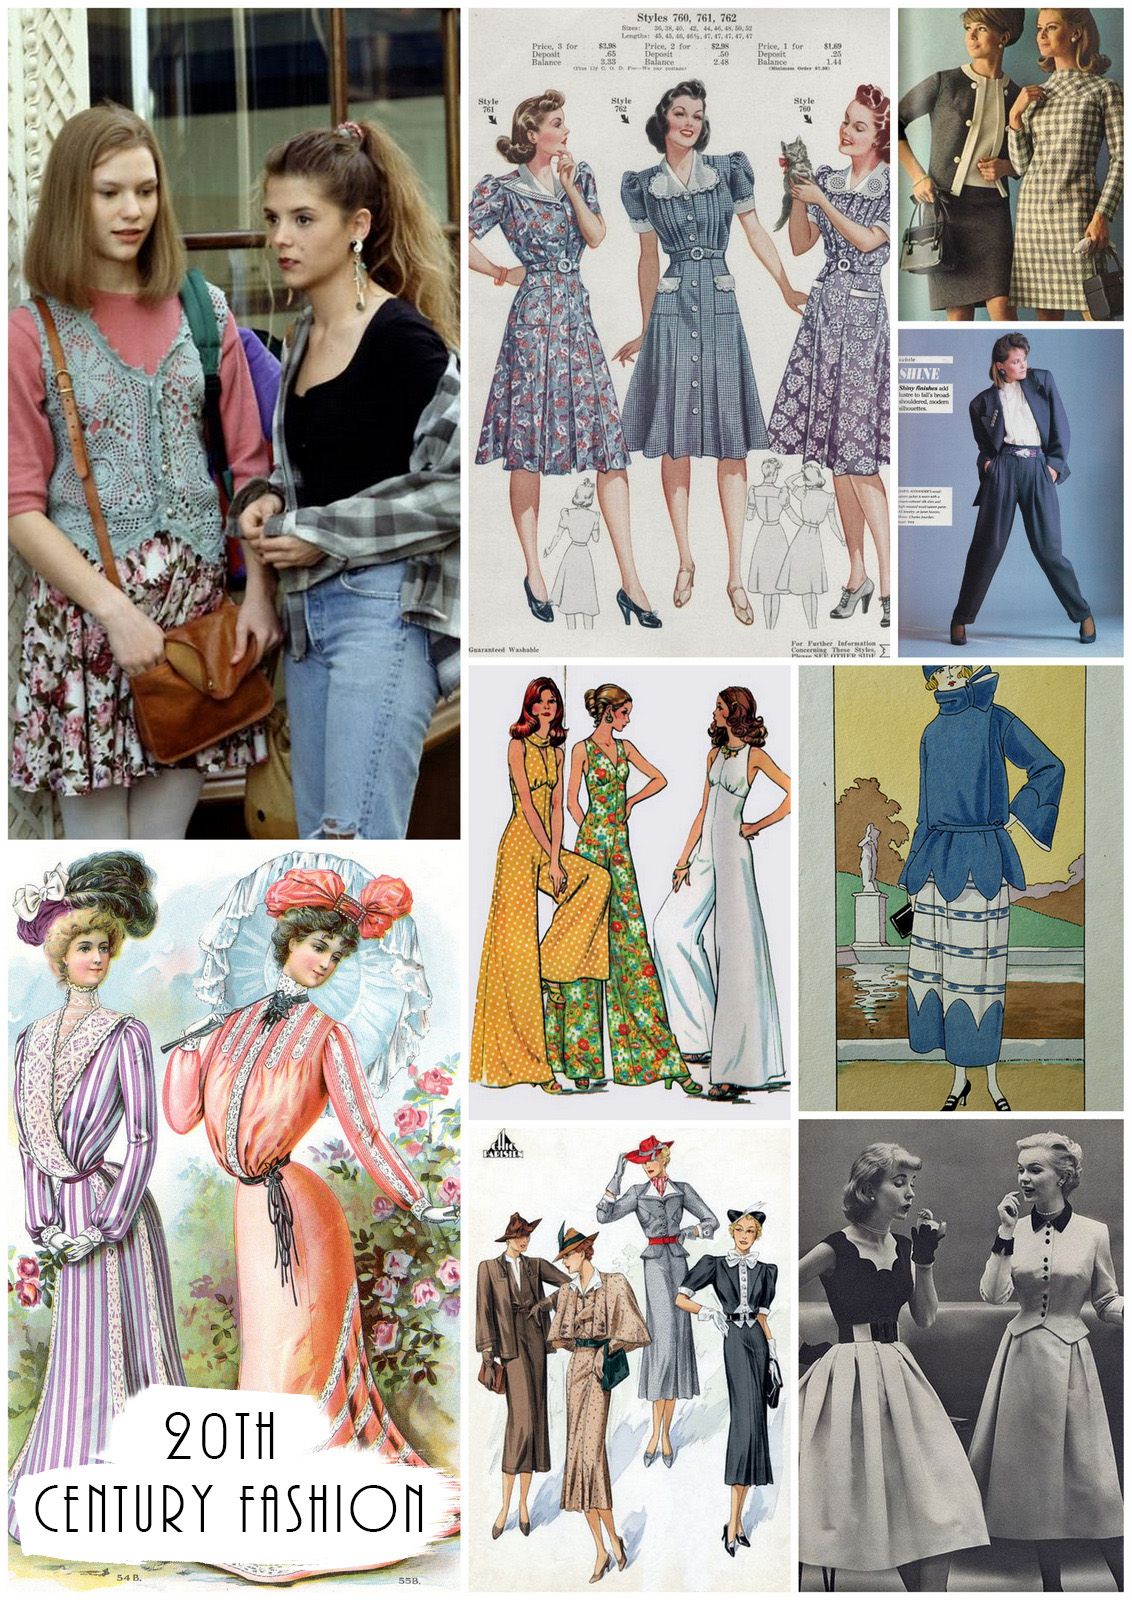 A fashion guide to womenswear the last 100 years and the 20th century fashion | The Fashion Folks